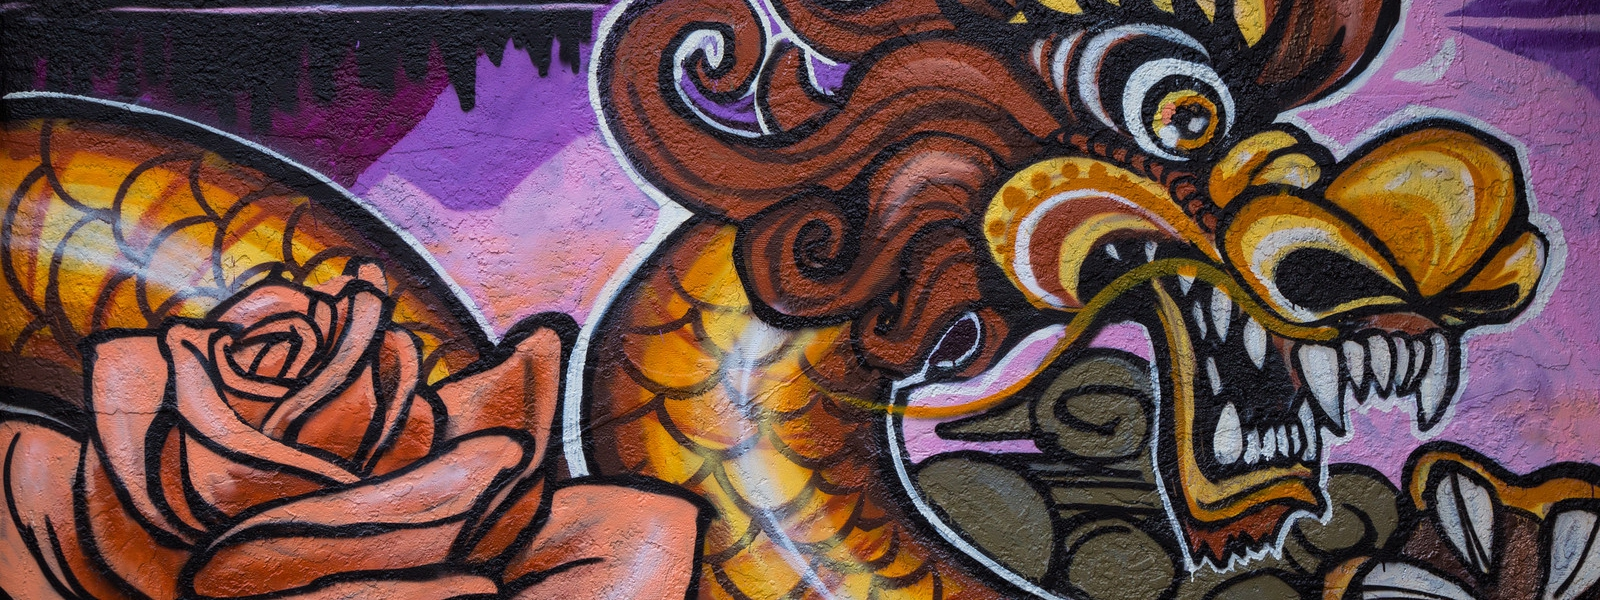 141113 0682 Oakland Chinatown Dragon Mural X3